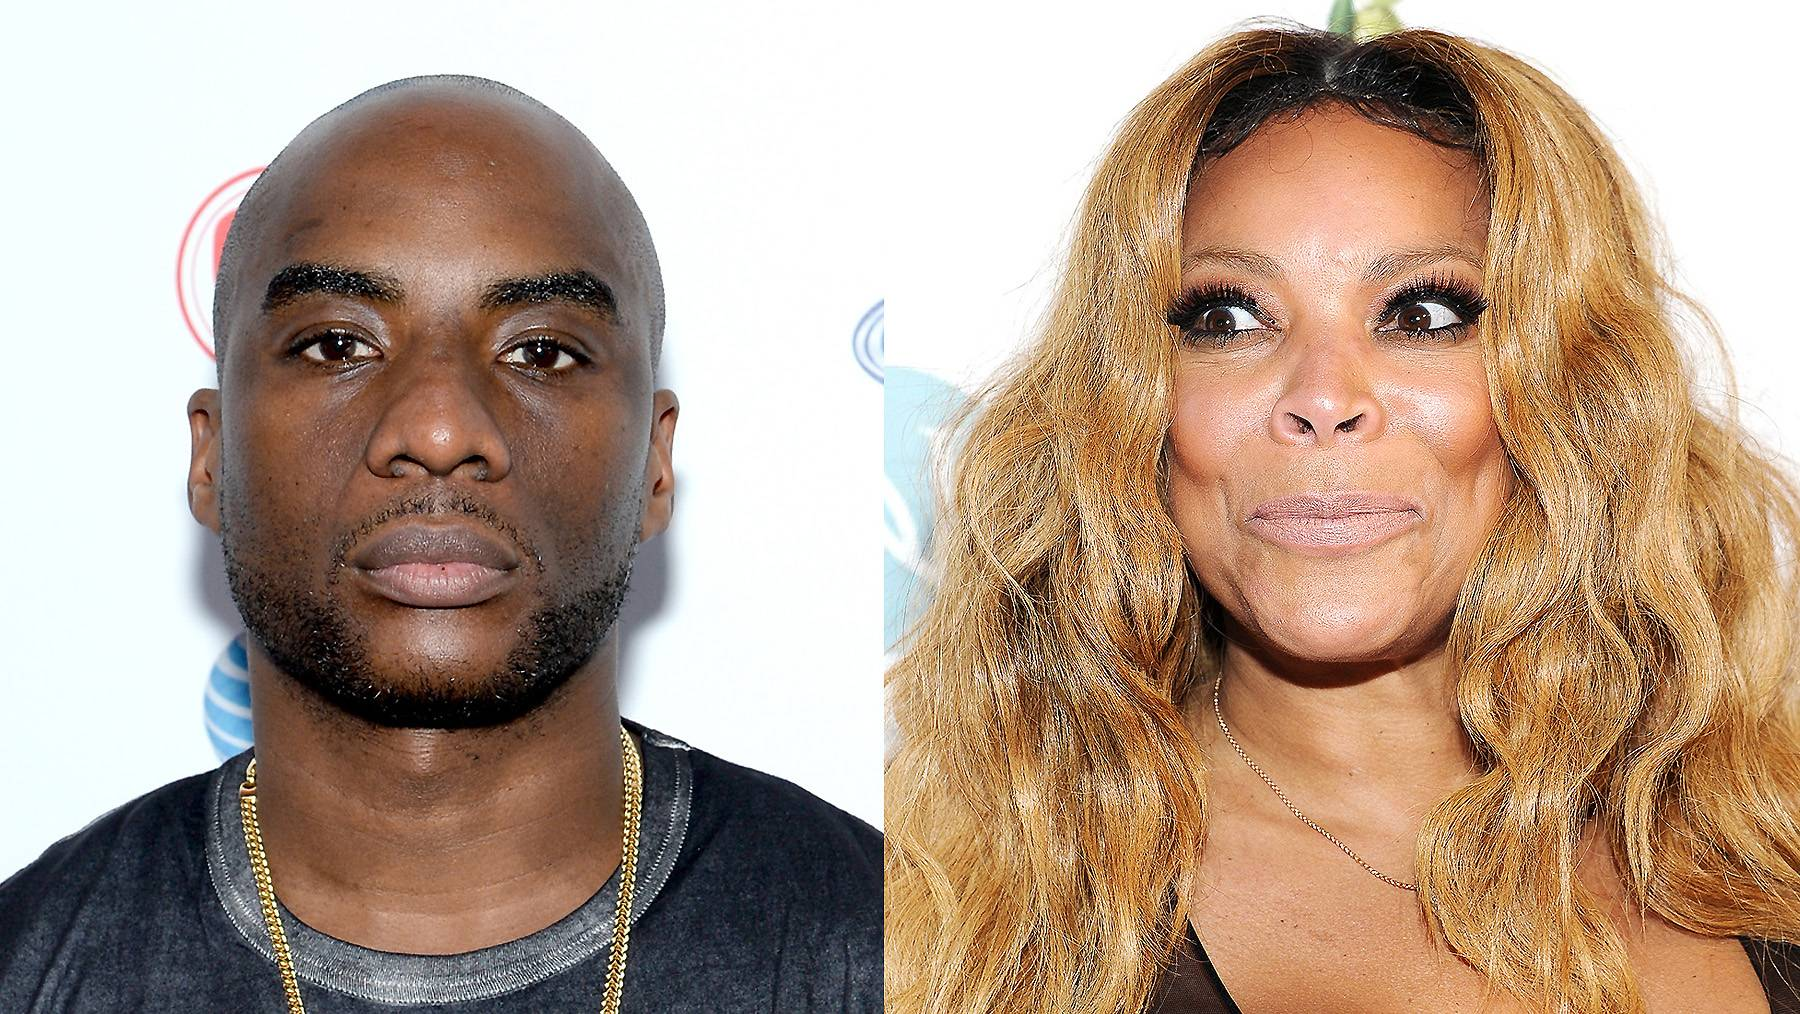 """Charlamagne tha God Says He's Hurt - Those who are familiar with Charlamagne tha God know that he got his major shot at success in media as co-host onWendy Williams's radio show. However, the two have fallen out since then. Charlamagne revealed that he and Wendy haven't spoken since he had a falling out with her husband. In a recent interview, when Wendy was asked about Charlamagne, her response was, """"Who?""""Charlamagne, who recently stopped by The Elvis Duran Show, the same show that Wendy pretended to not know him, and revealed that it hurt his feelings.  """"I pride myself on being the nicest person in the room or being the nicest person to people?So when you try to play me like, I?m a f----d up individual, I did something foul to you ? that?s what bothers me. And that?s why it hurt me this week, when Wendy Williams was on The Elvis Duran Show,""""..."""